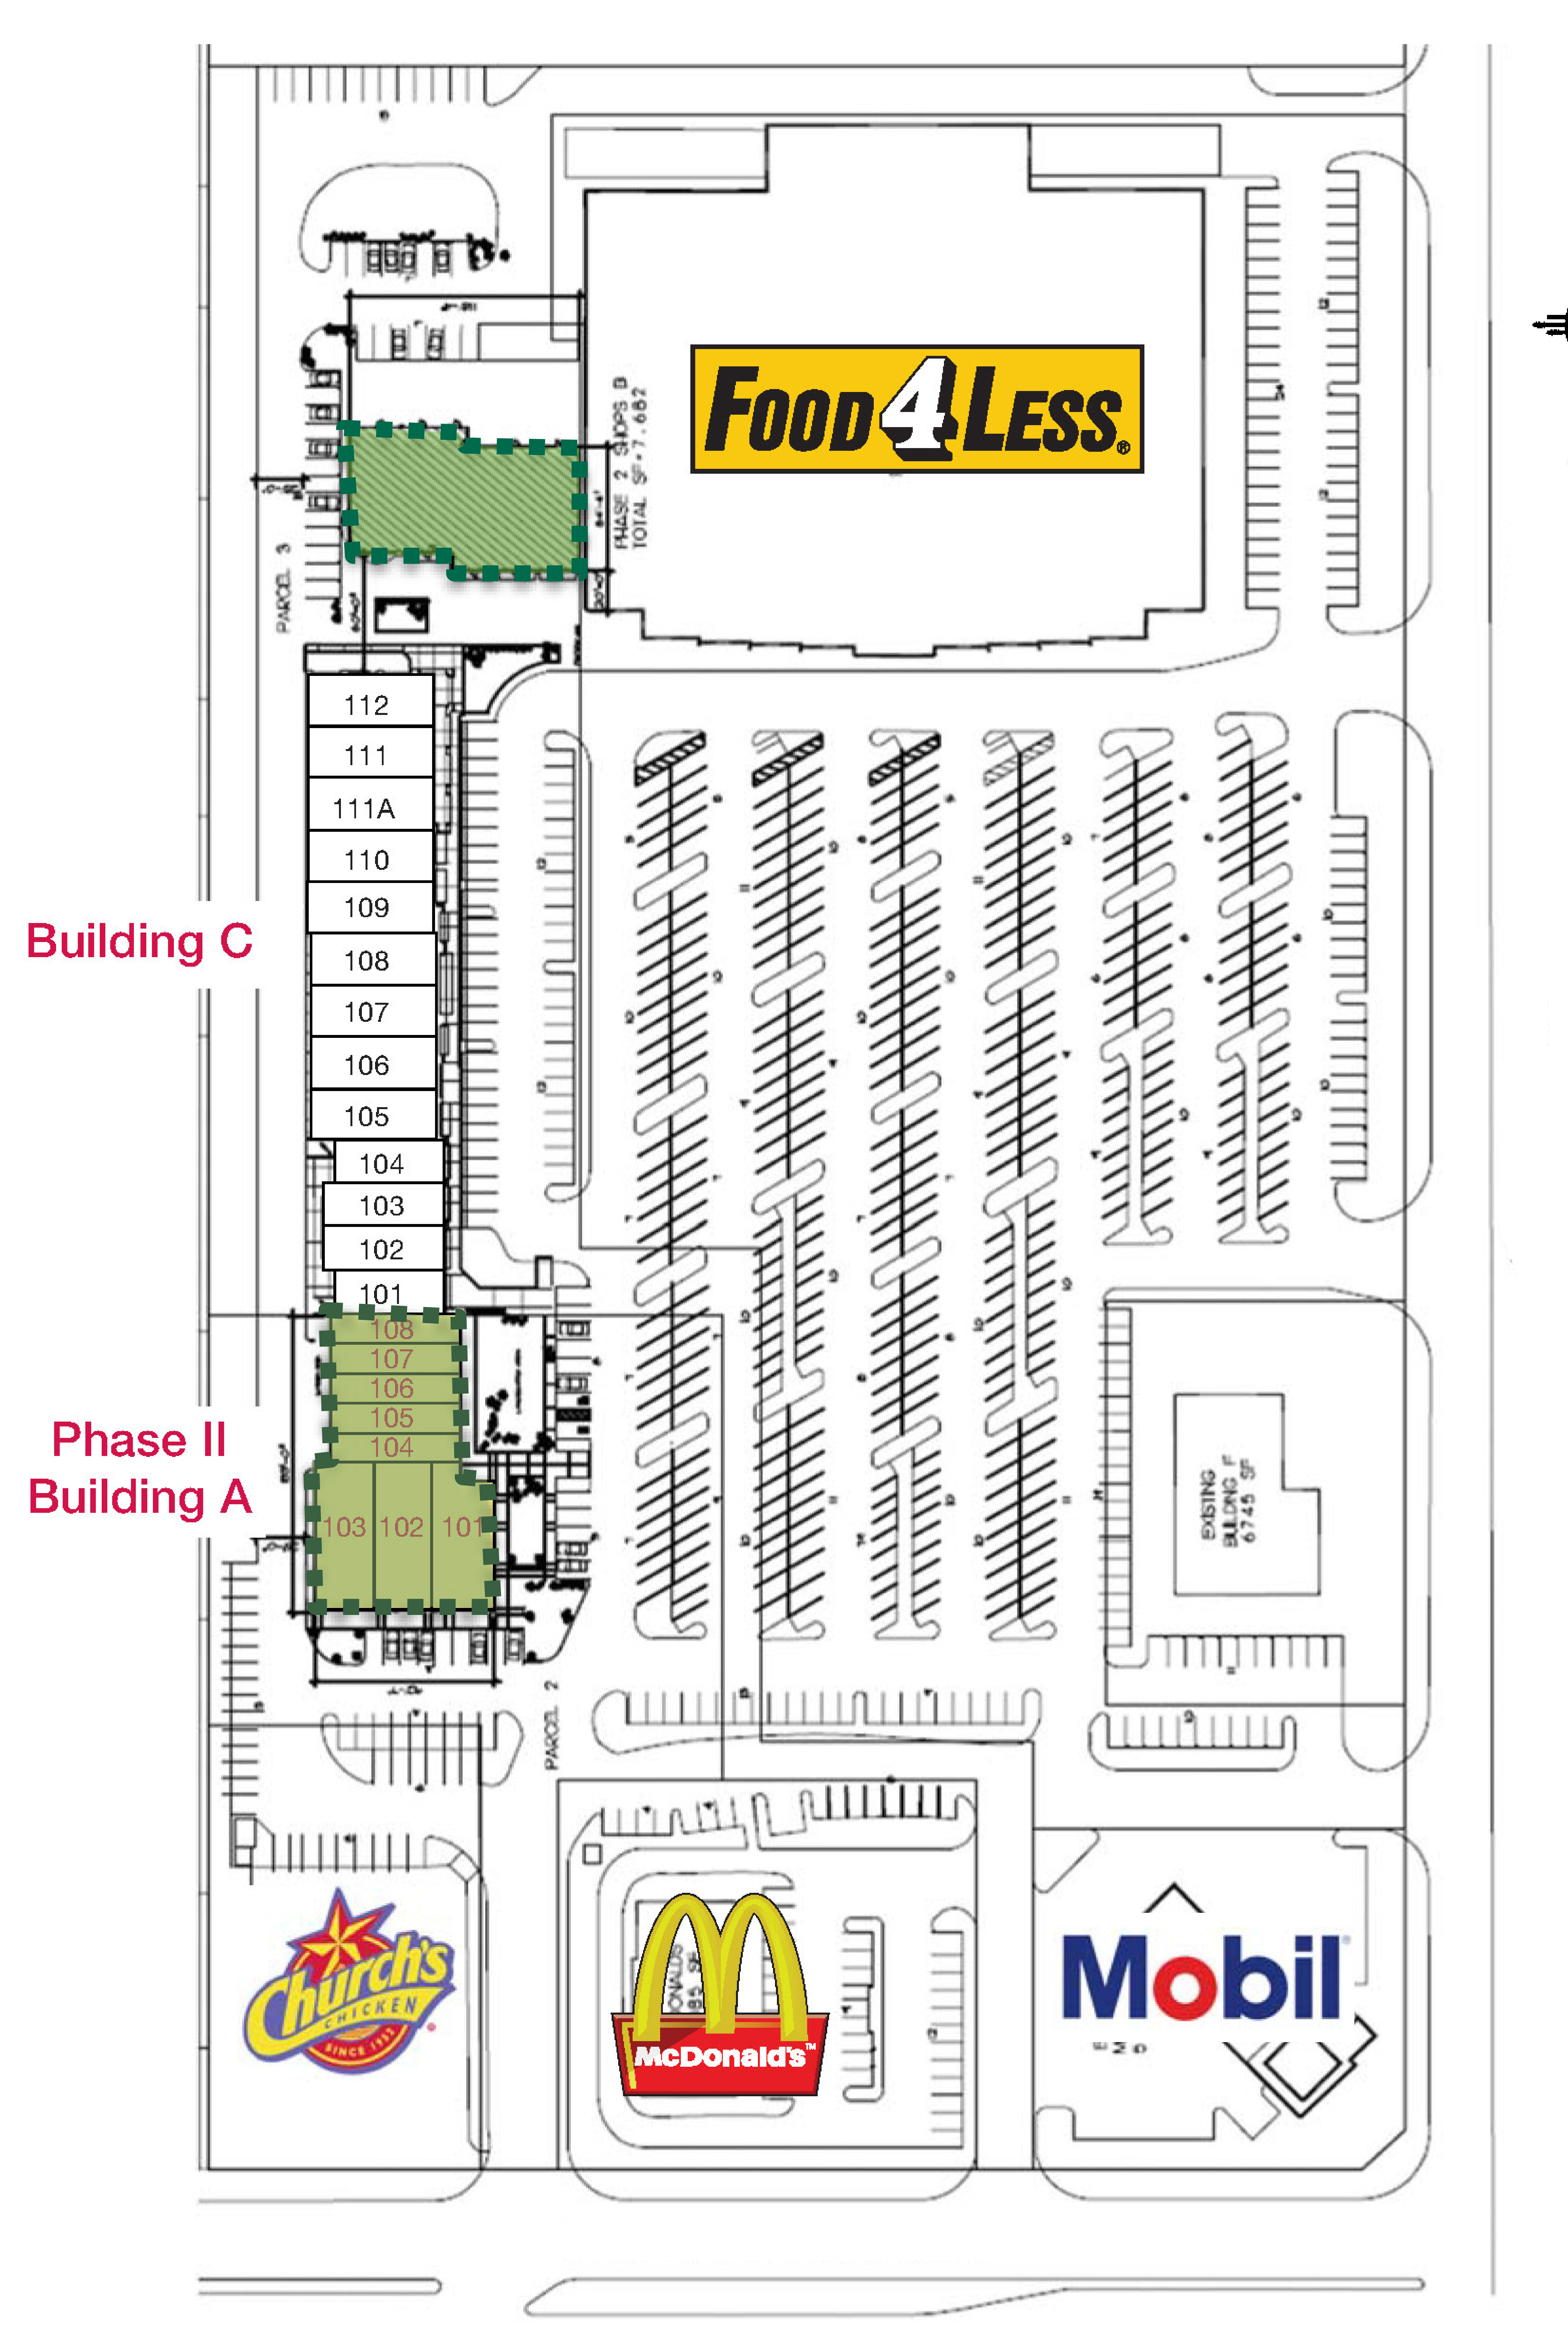 Shoppes in Moreno Valley-Pads for Sale, Lease or BTS: sit...